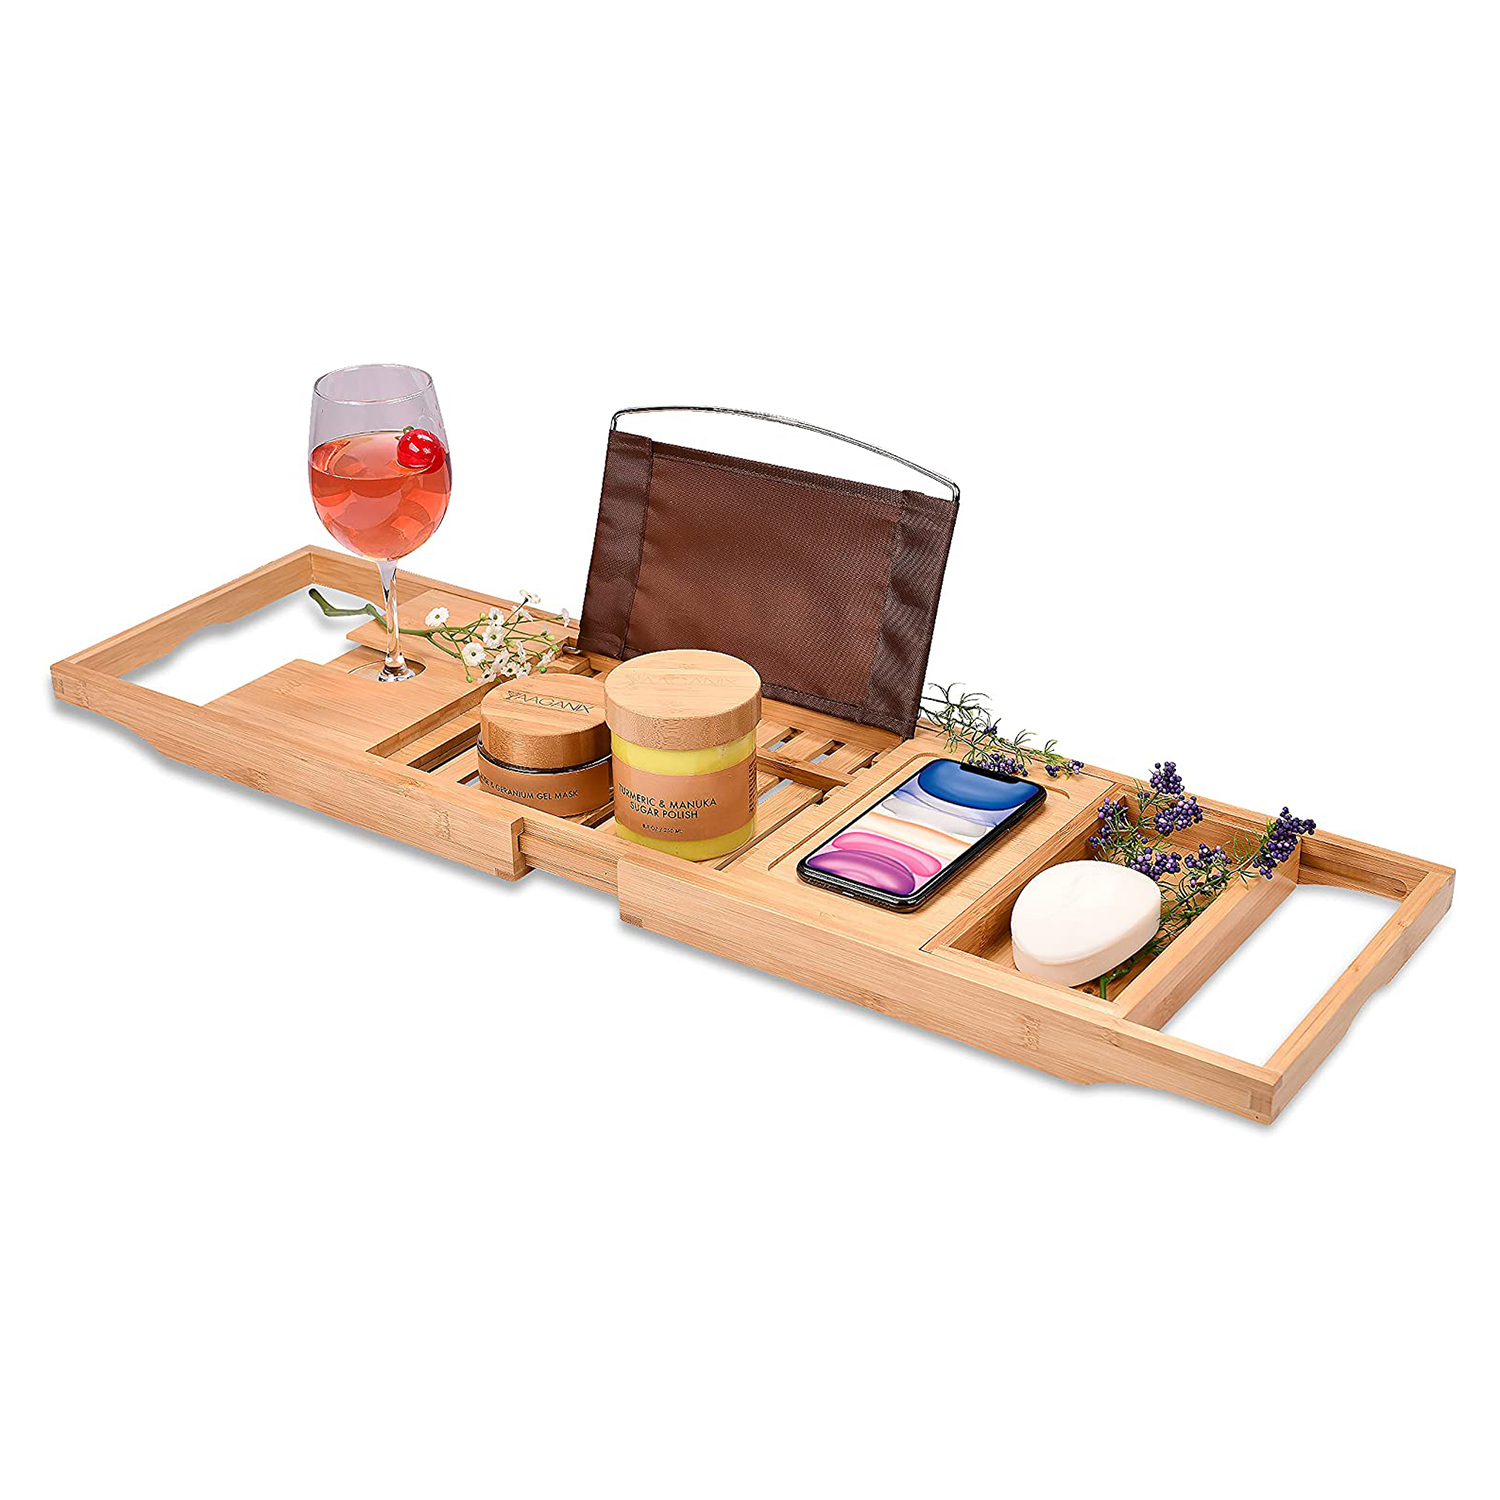 Bamboo Bathtub Tray - Perfect Expandable Bathtub Caddy with Reading Rack or Tablet Holder